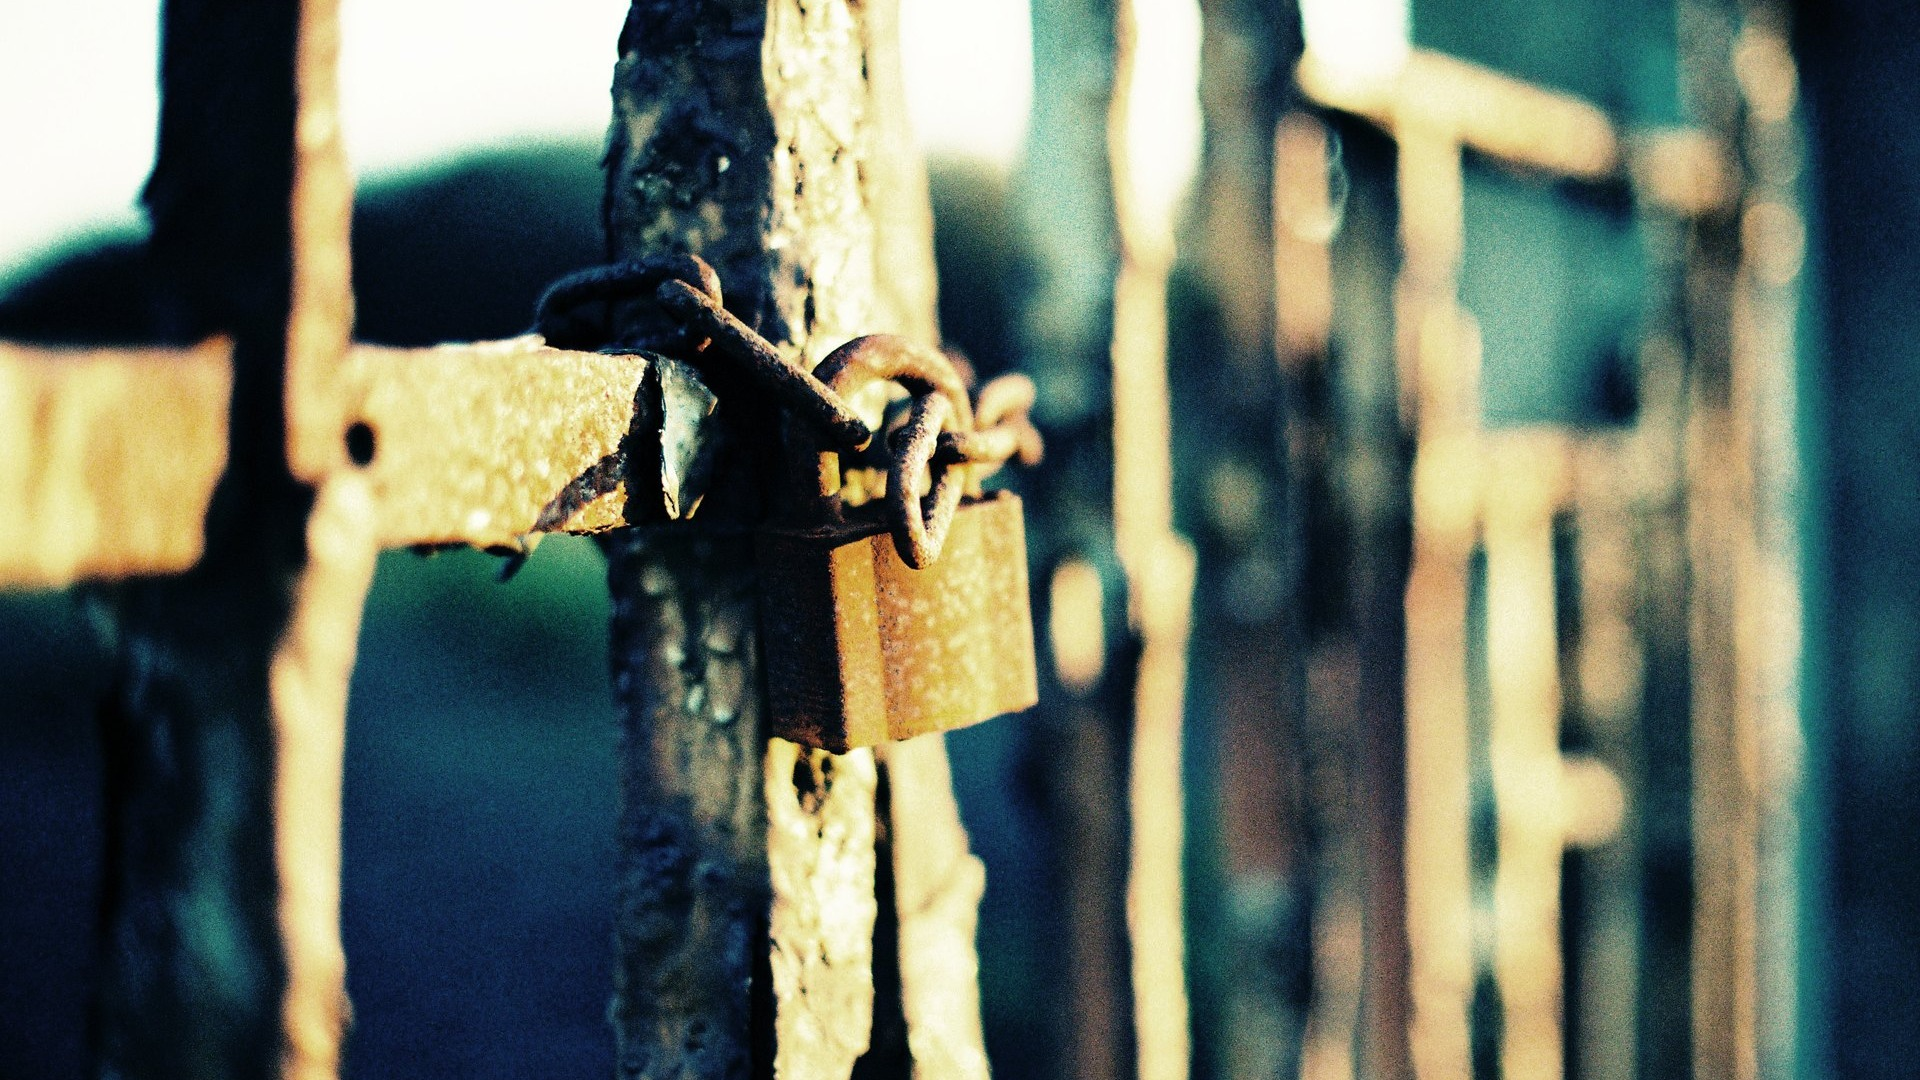 locked gate beautiful lomo photography 1920x1080 wallpaper download 10wall. Black Bedroom Furniture Sets. Home Design Ideas